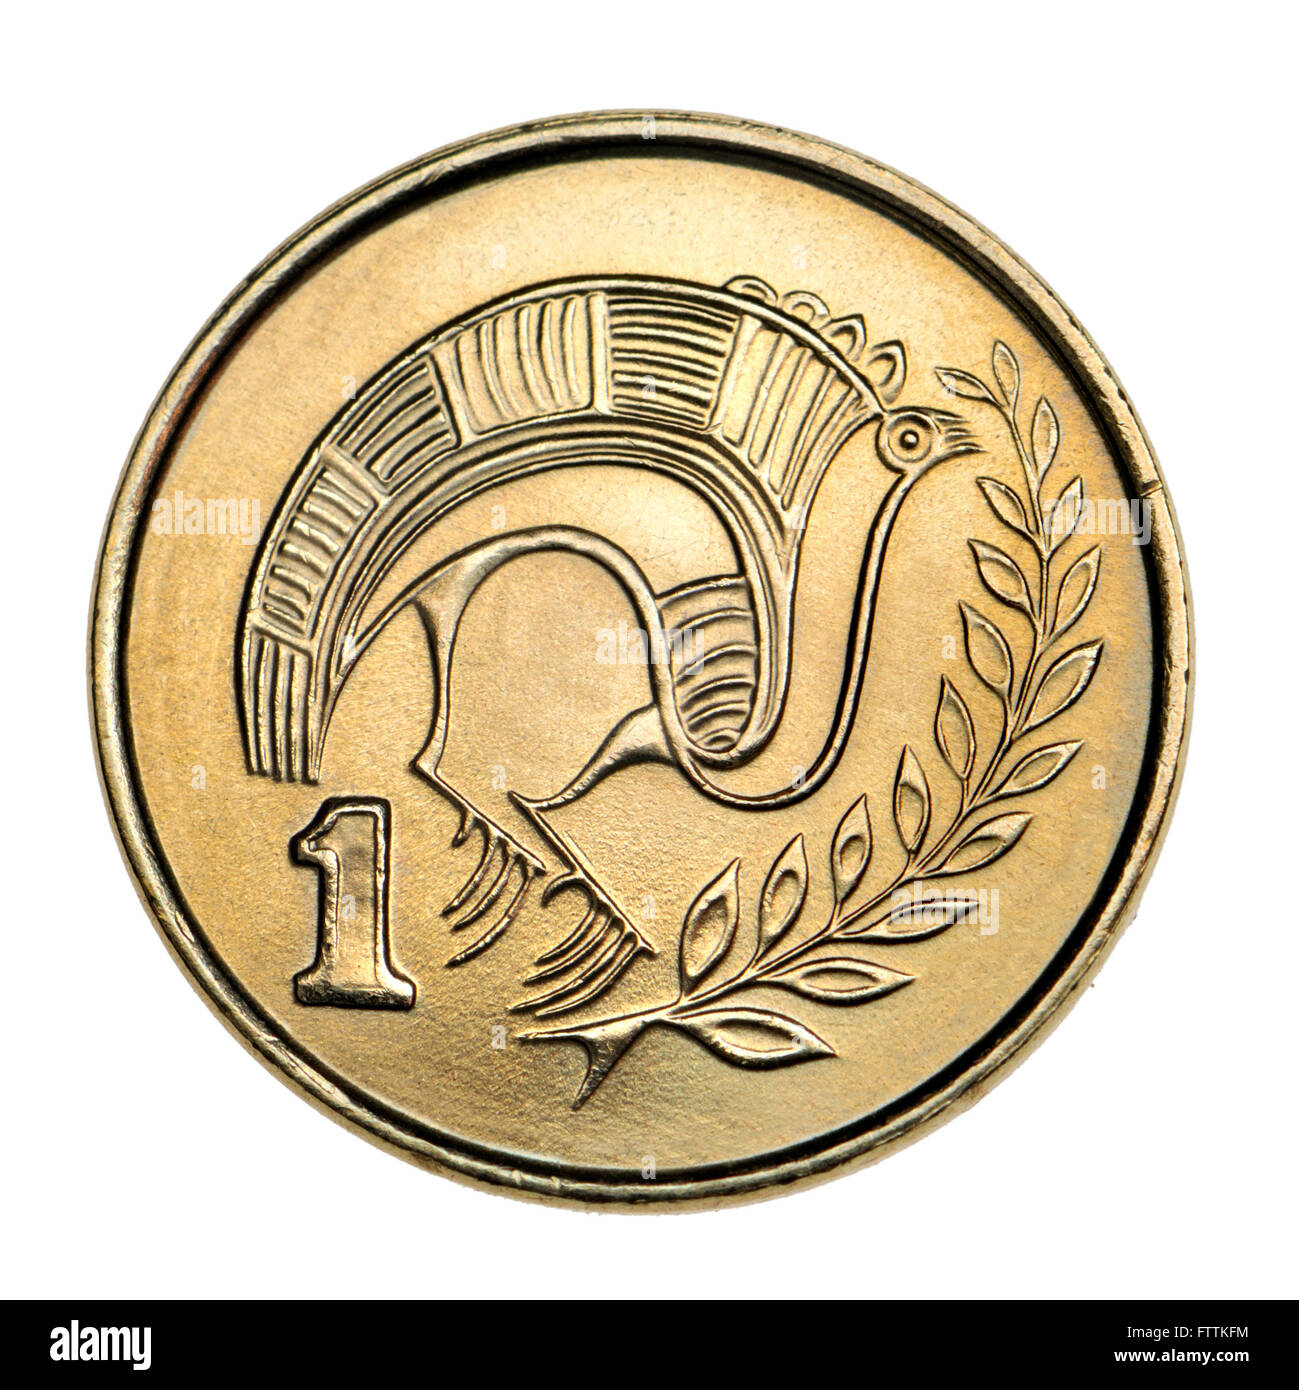 Pre-Euro coin of Cyprus: One cent showing Stylised bird perched on a branch from a jug of bichrome ware from the Stock Photo